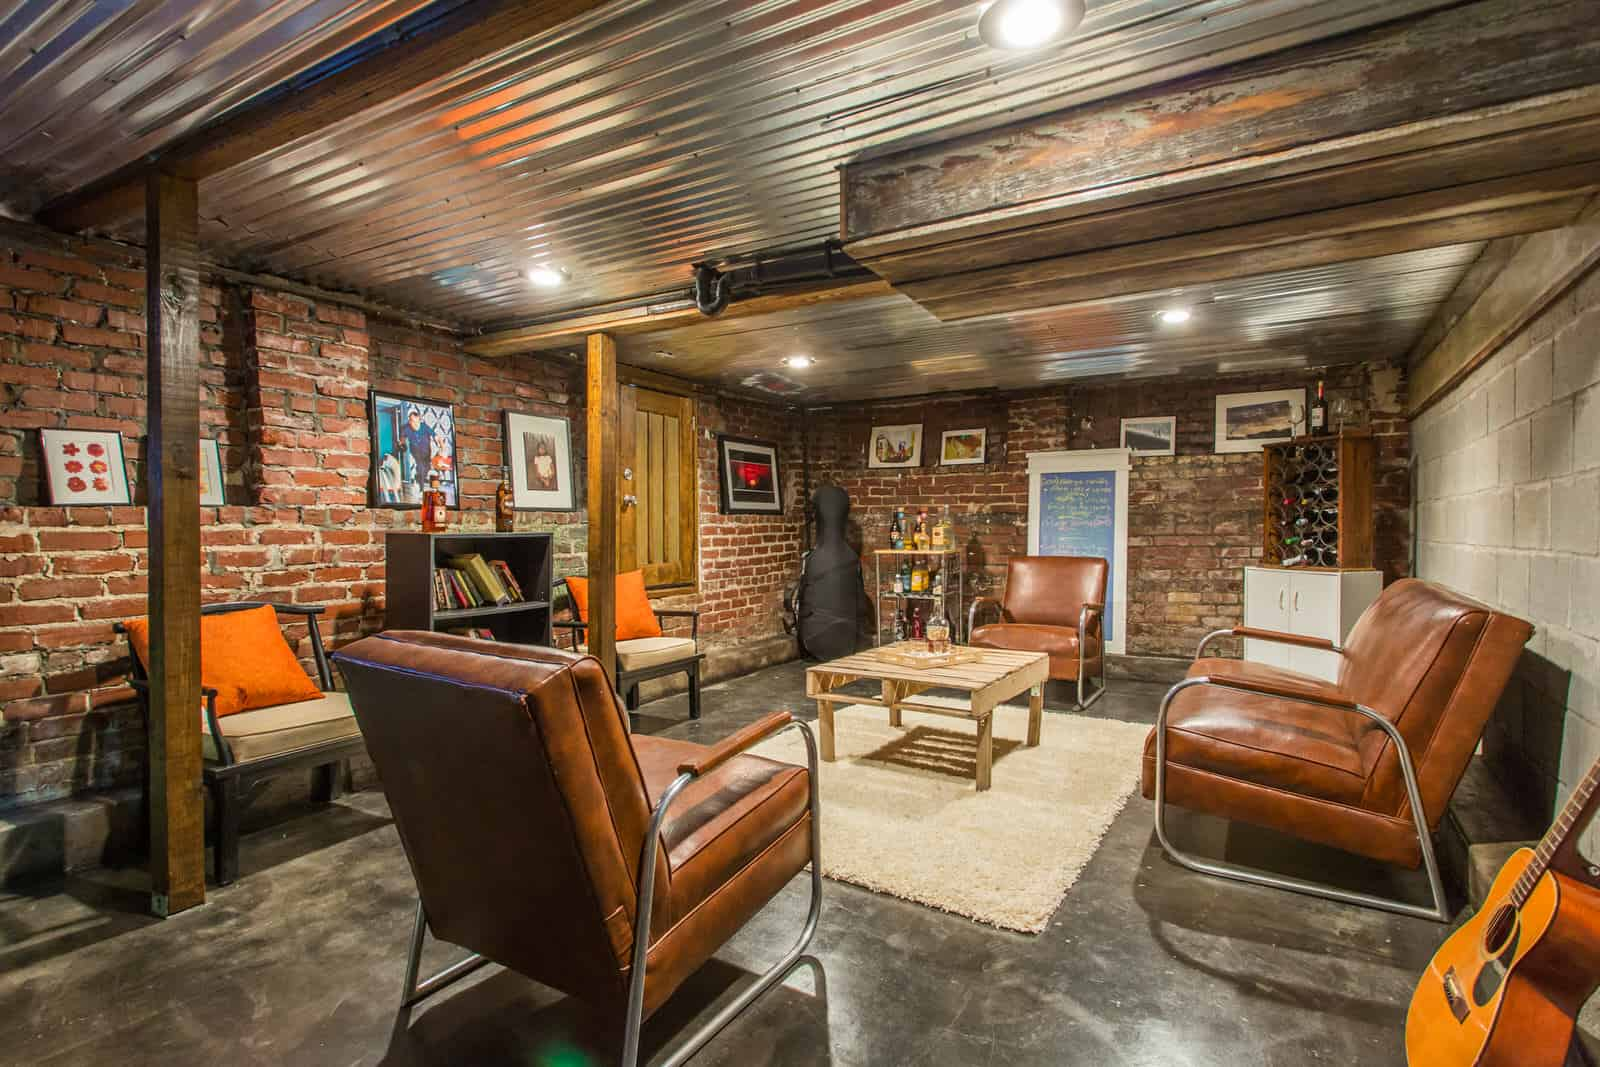 Atlanta Old Fourth Ward Bungalow For Sale 525 000